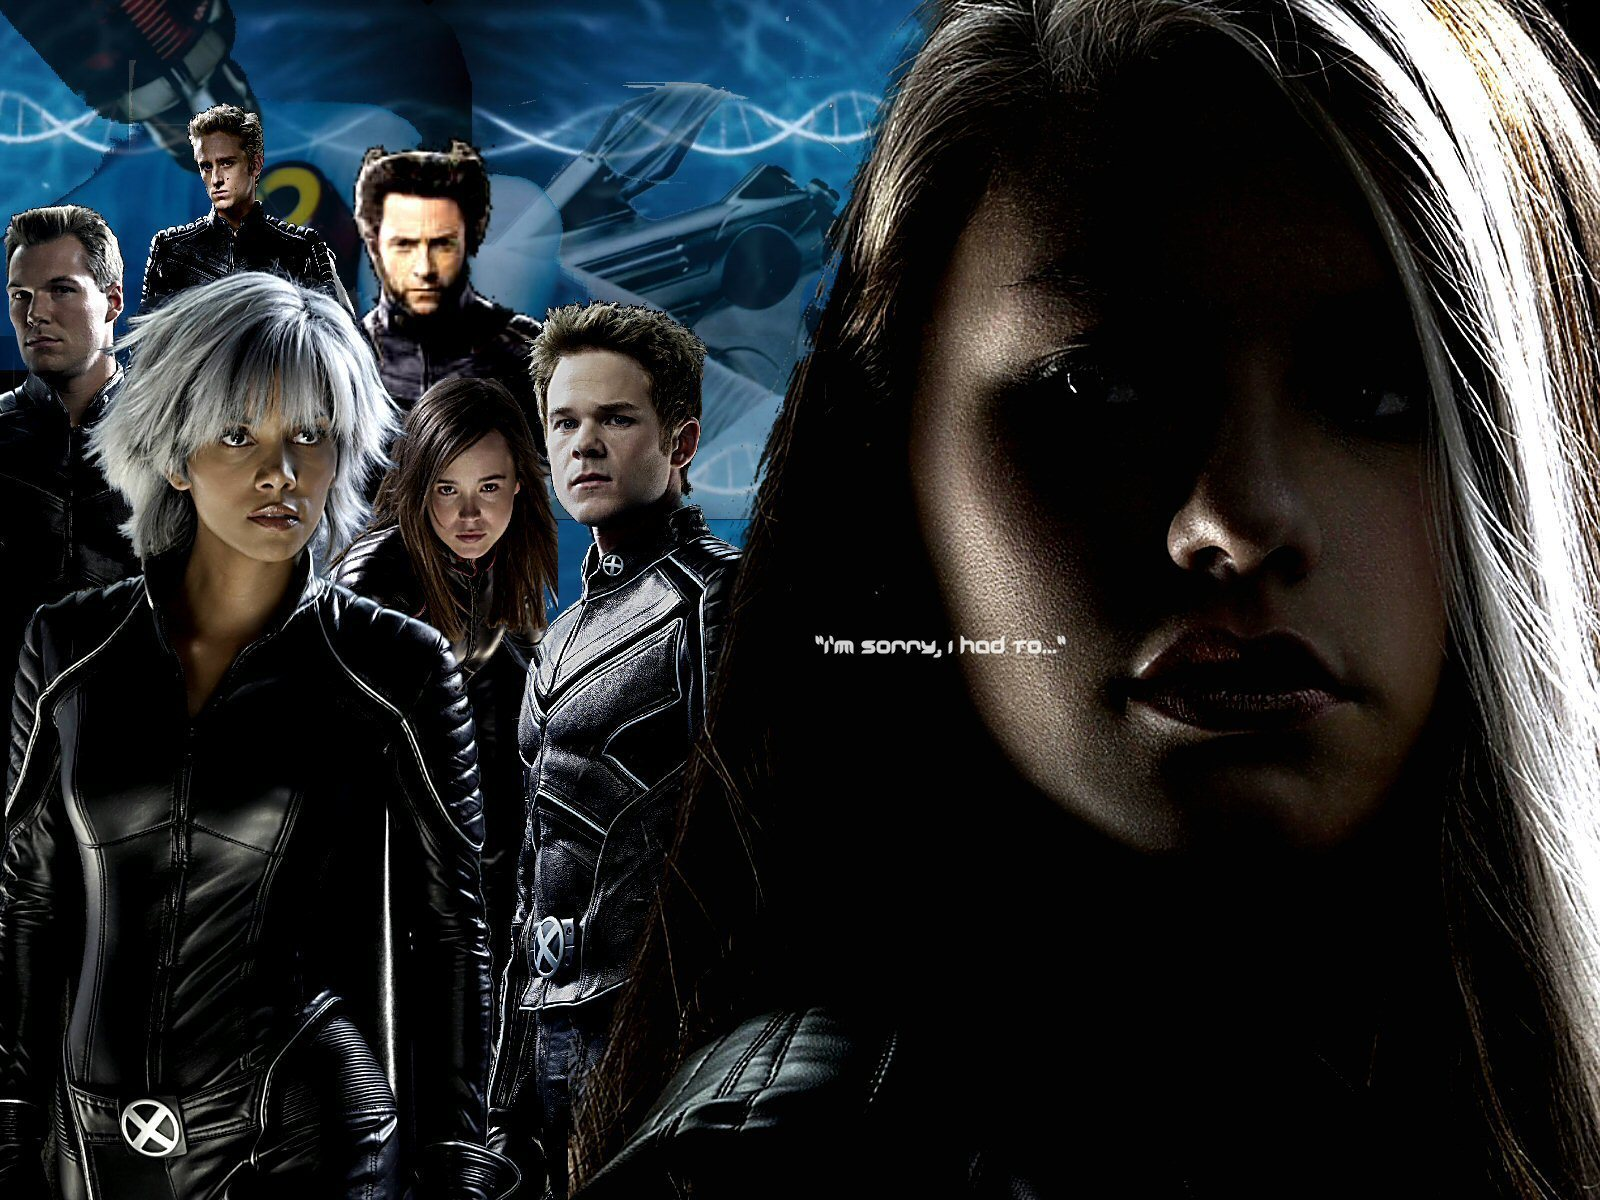 X Men THE MOVIE Images Rogue I Had To HD Wallpaper And Background Photos